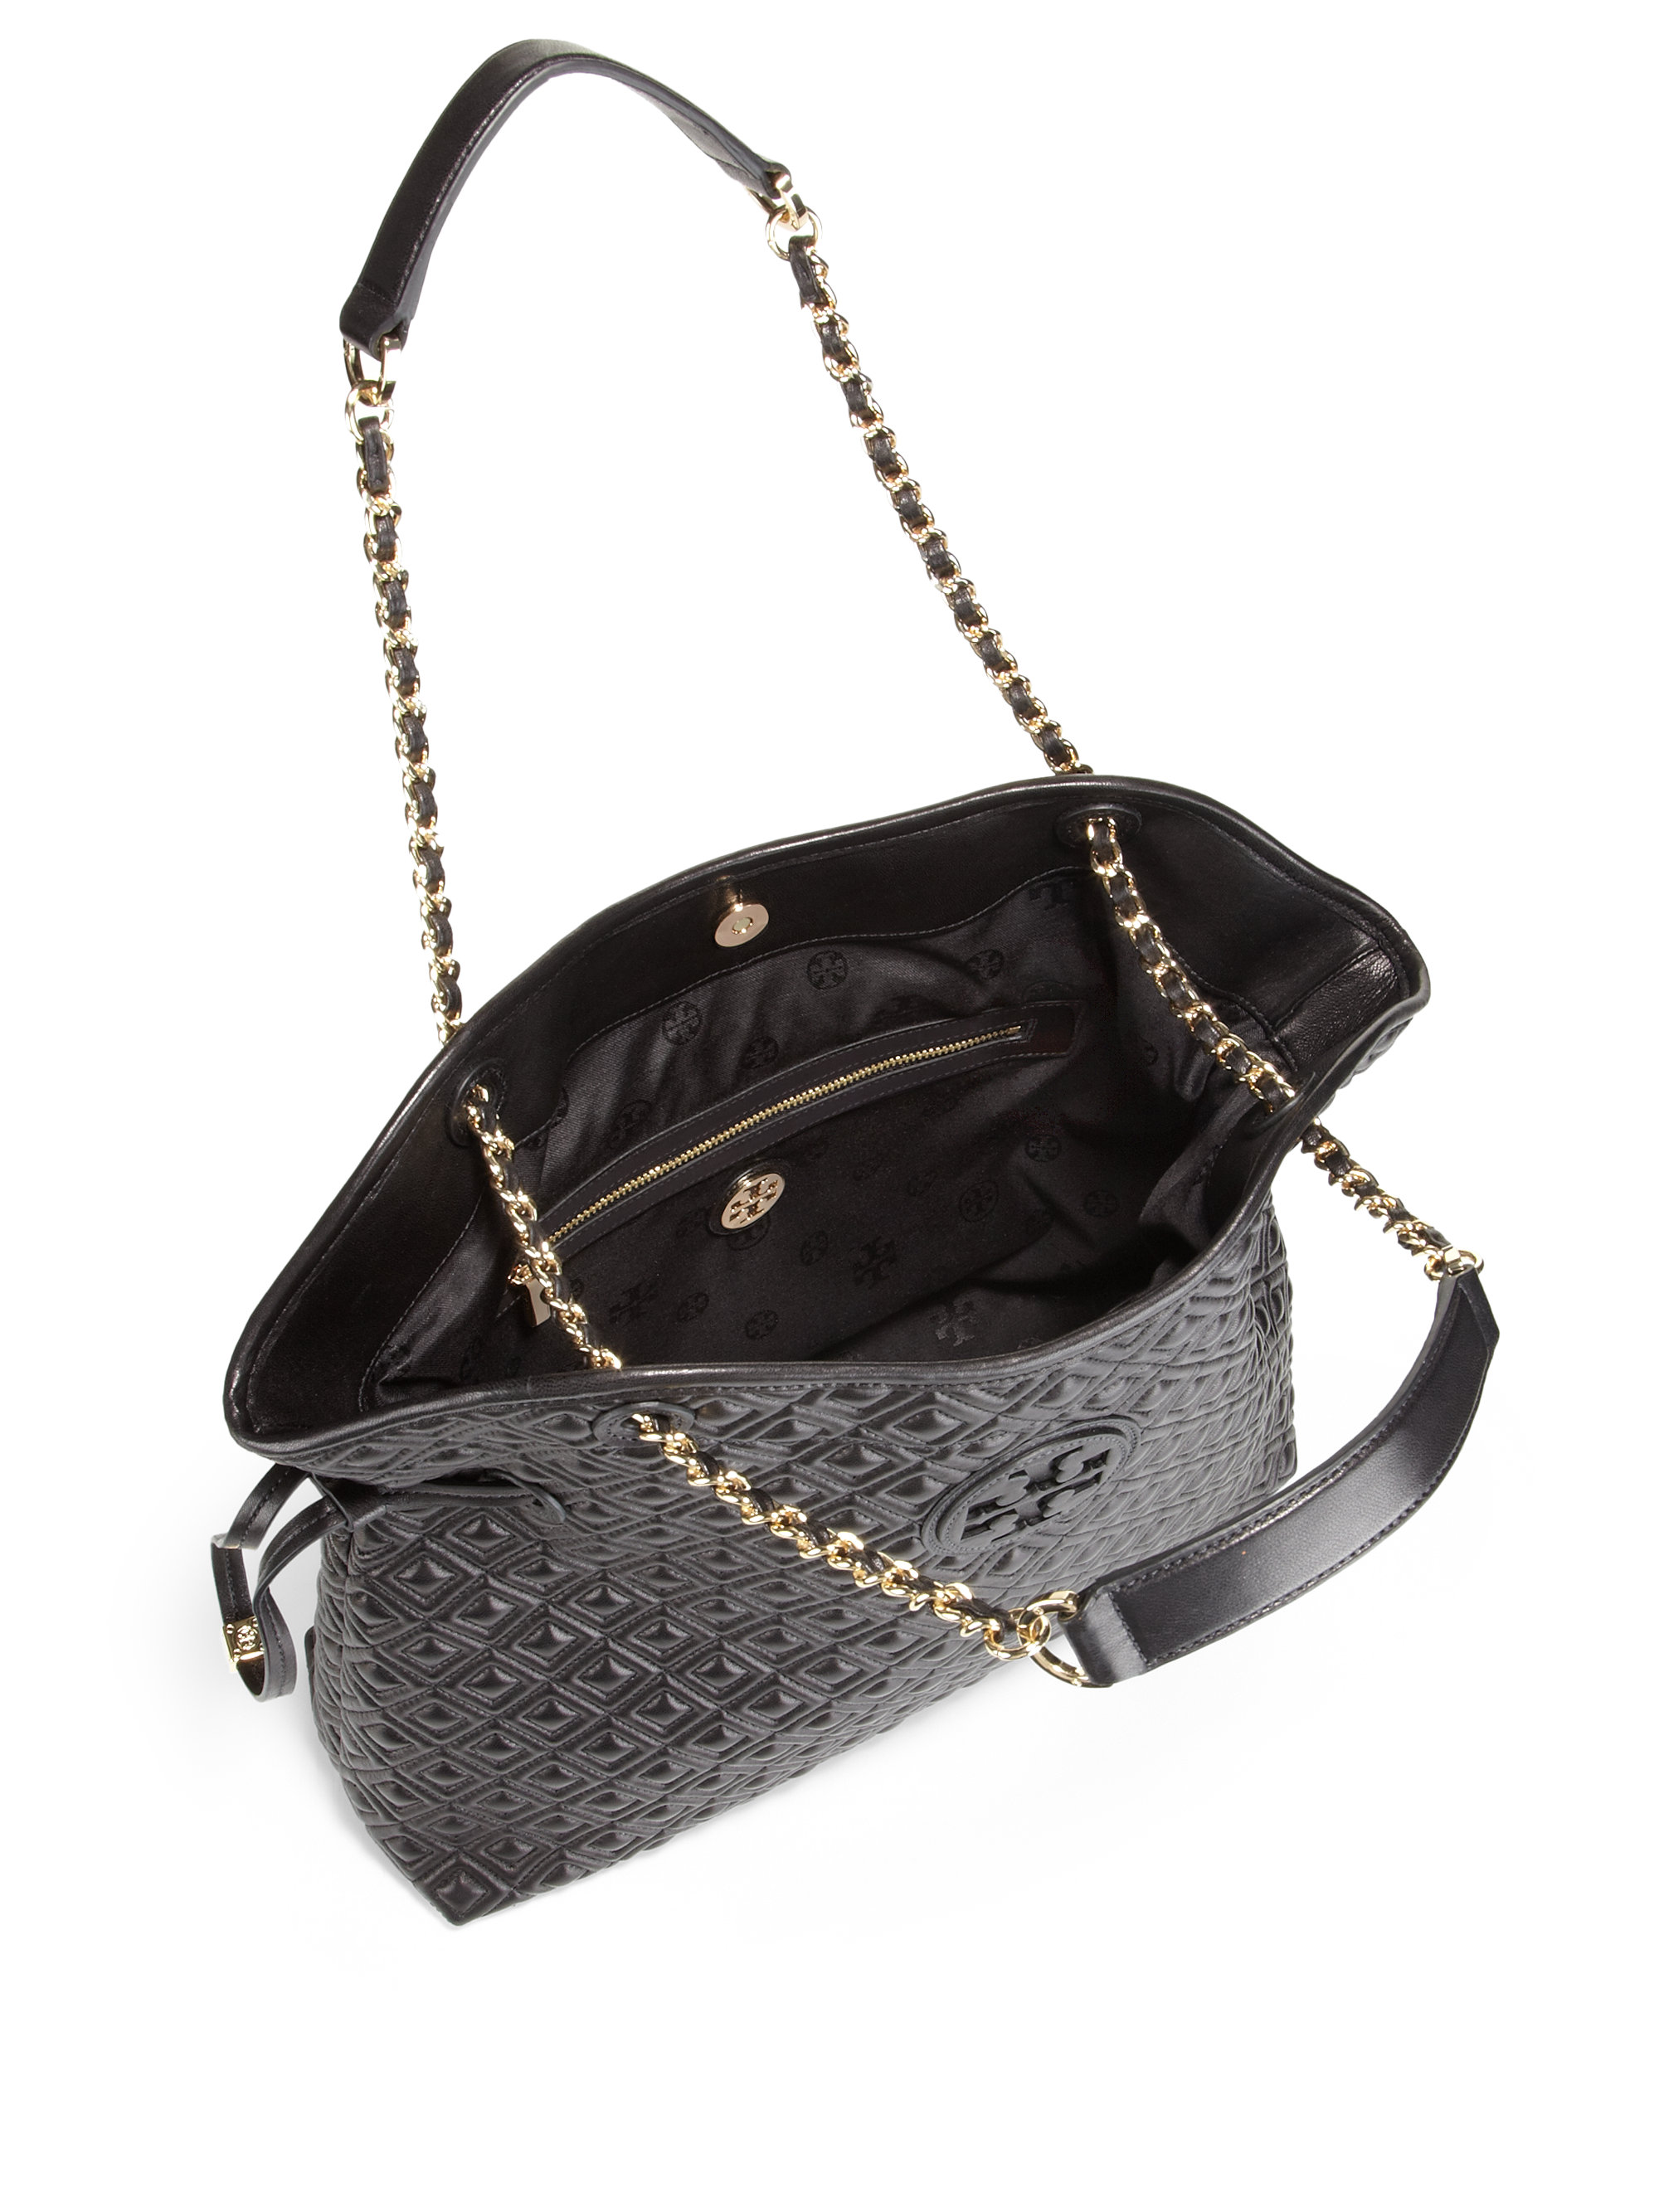 Tory burch Marion Quilted Slouchy Shoulder Bag in Black | Lyst : marion quilted tory burch - Adamdwight.com